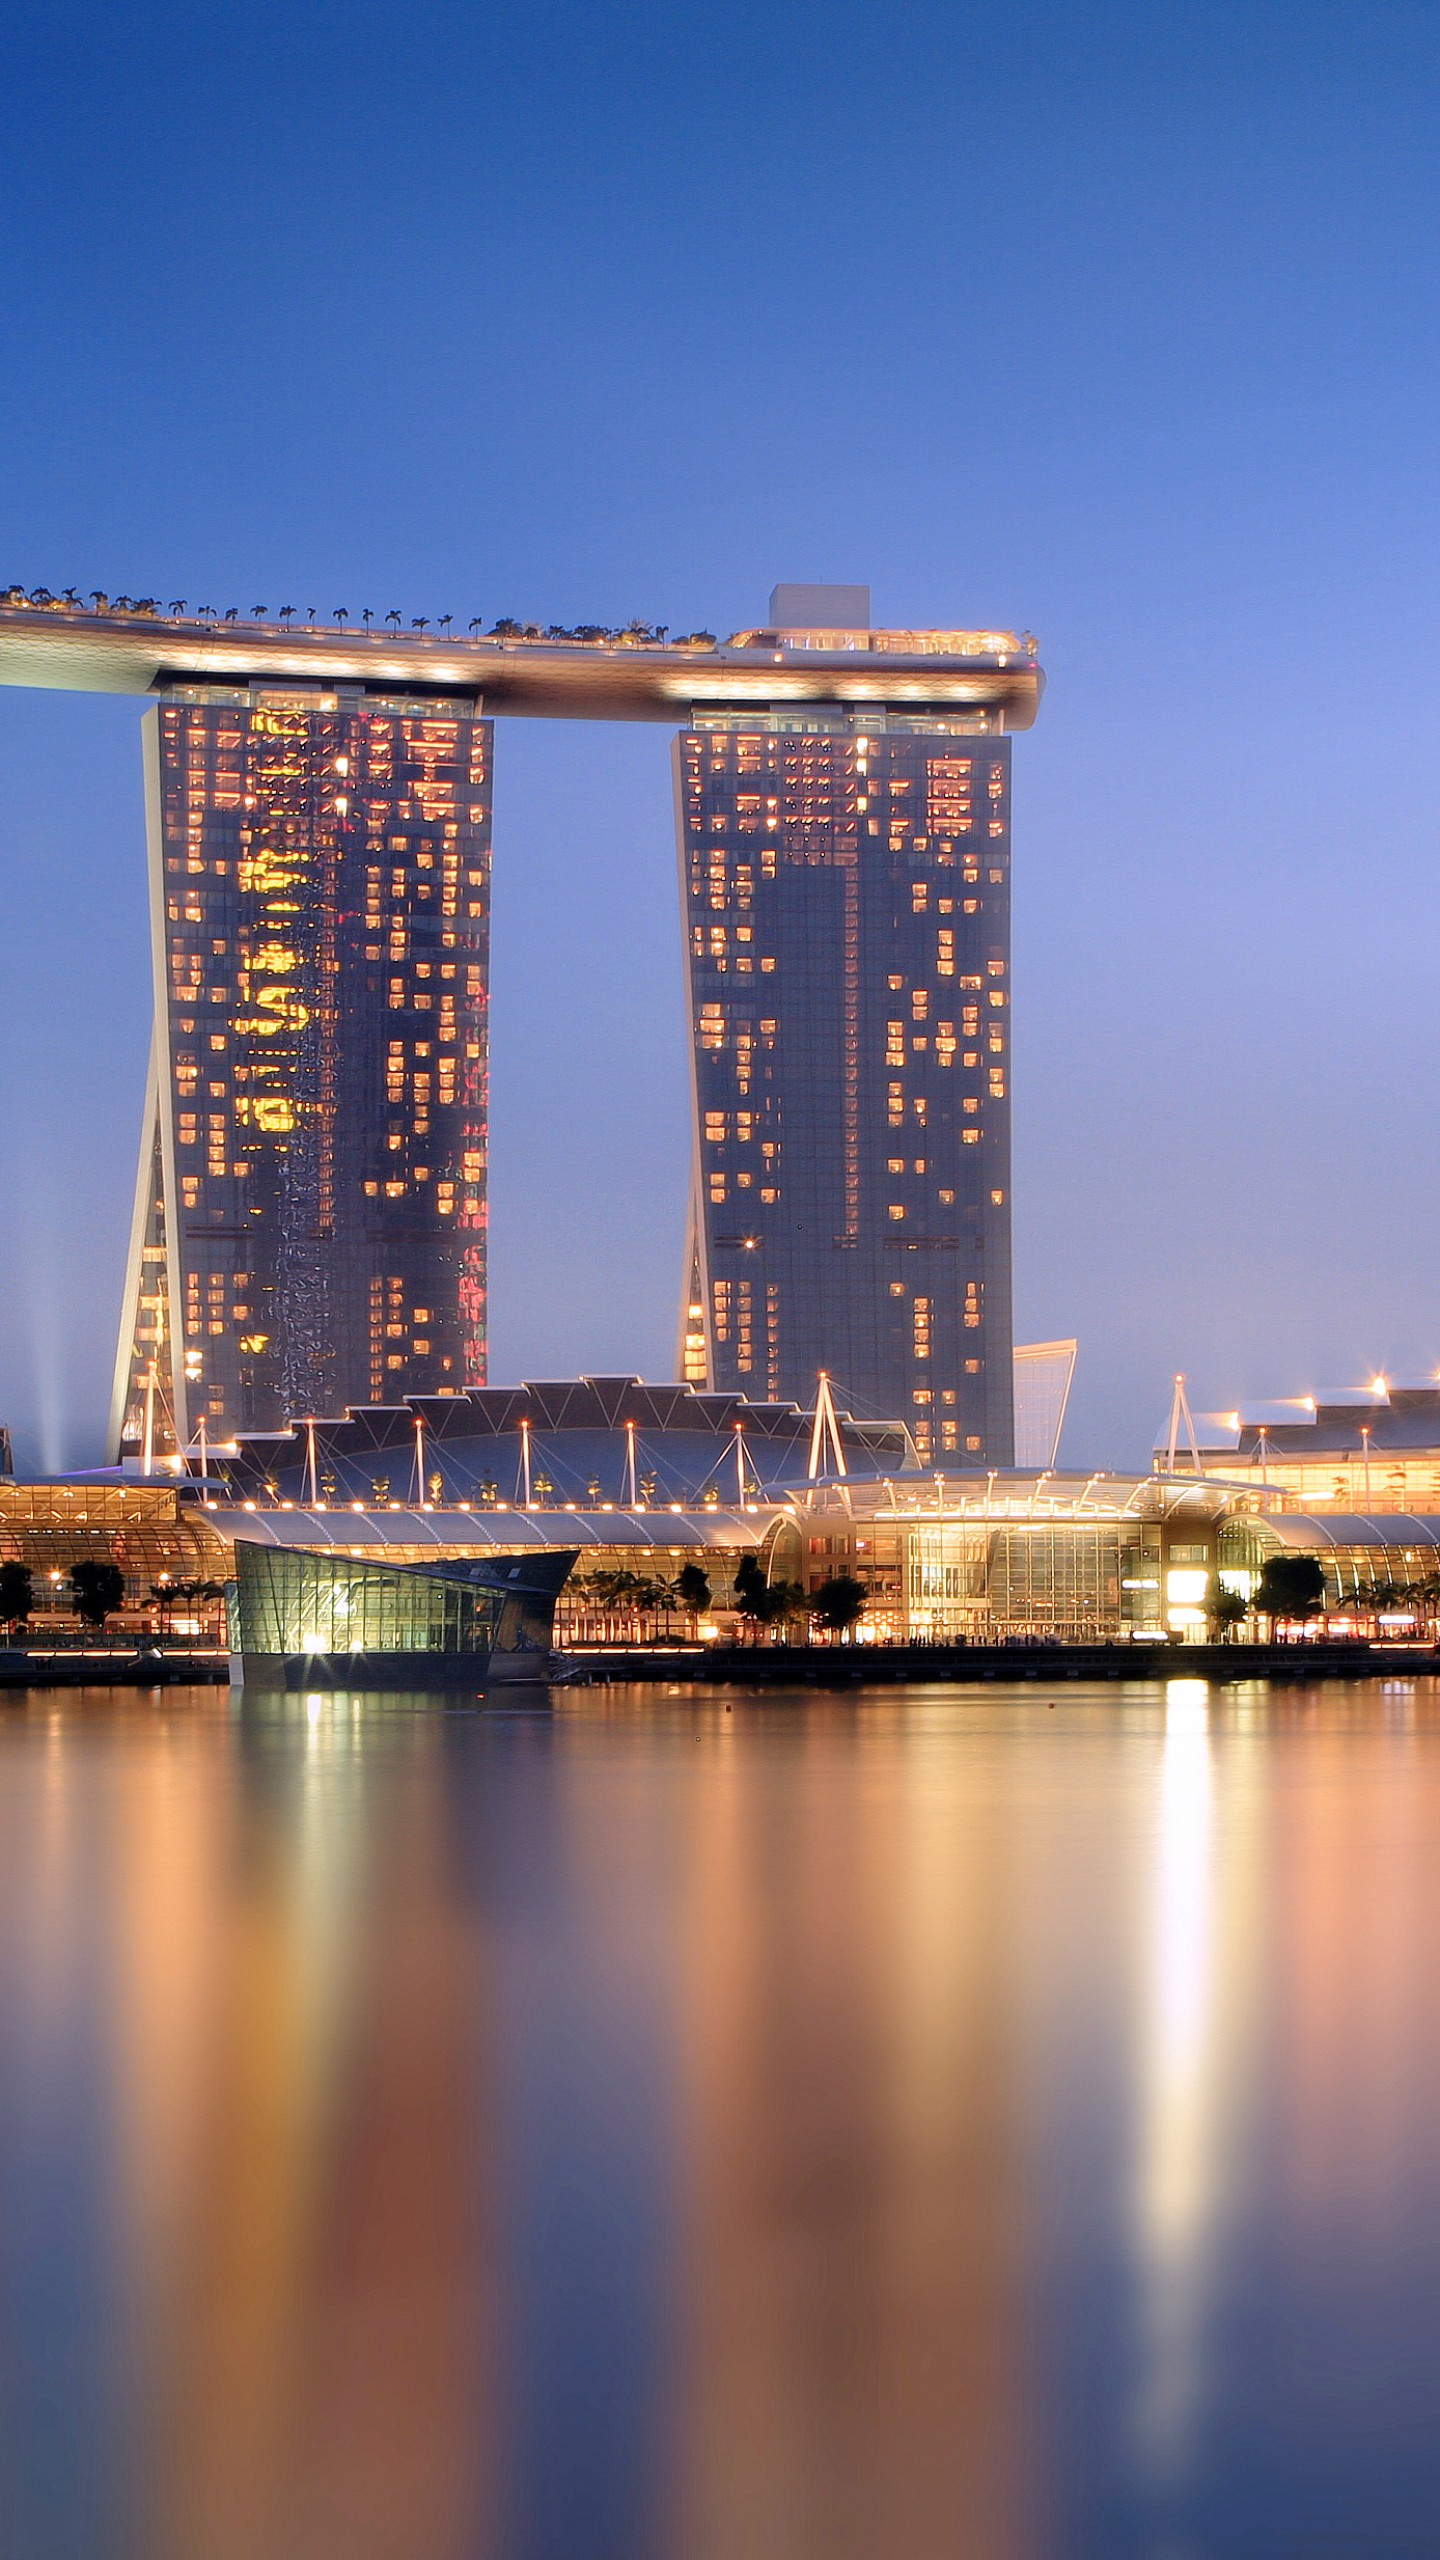 Wallpaper Marina Bay Sands Hotel Travel Booking Pool Casino Singapore Architecture 335